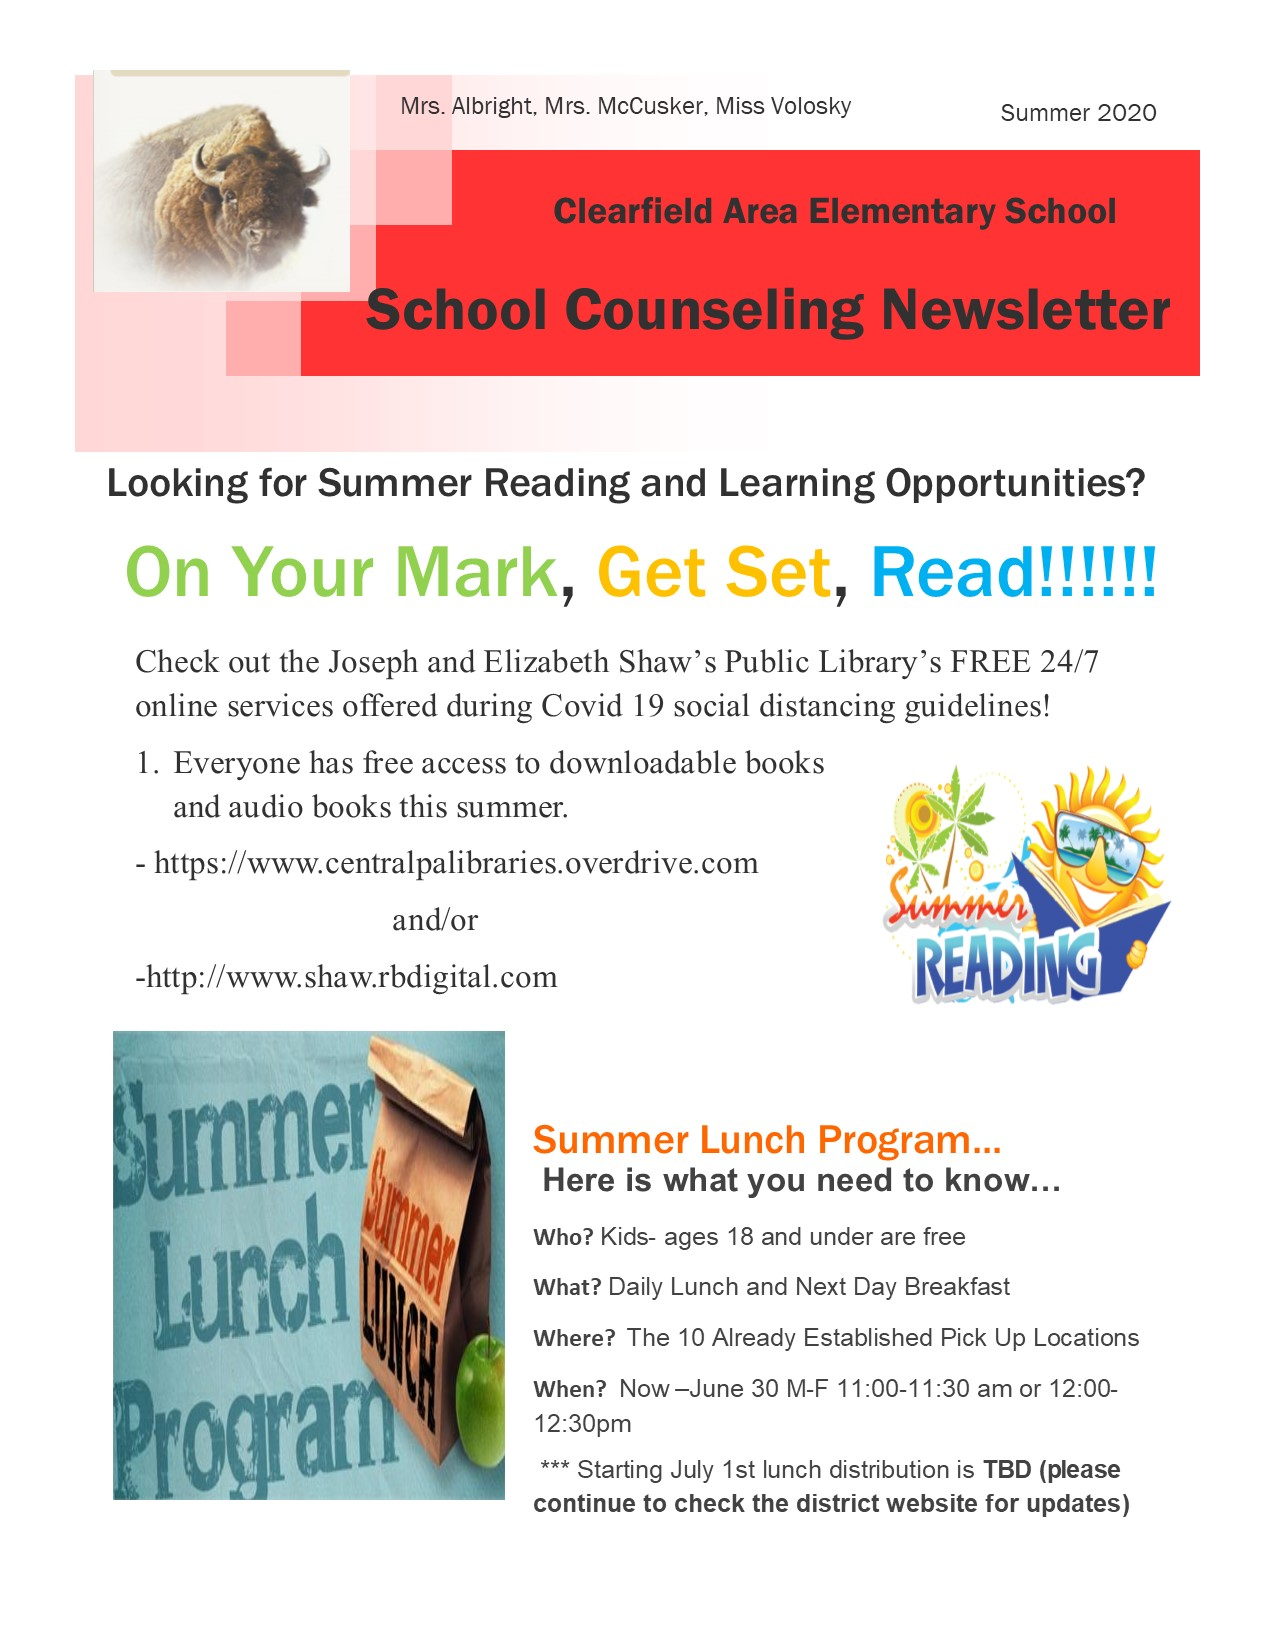 photo of the school counseling newsletter